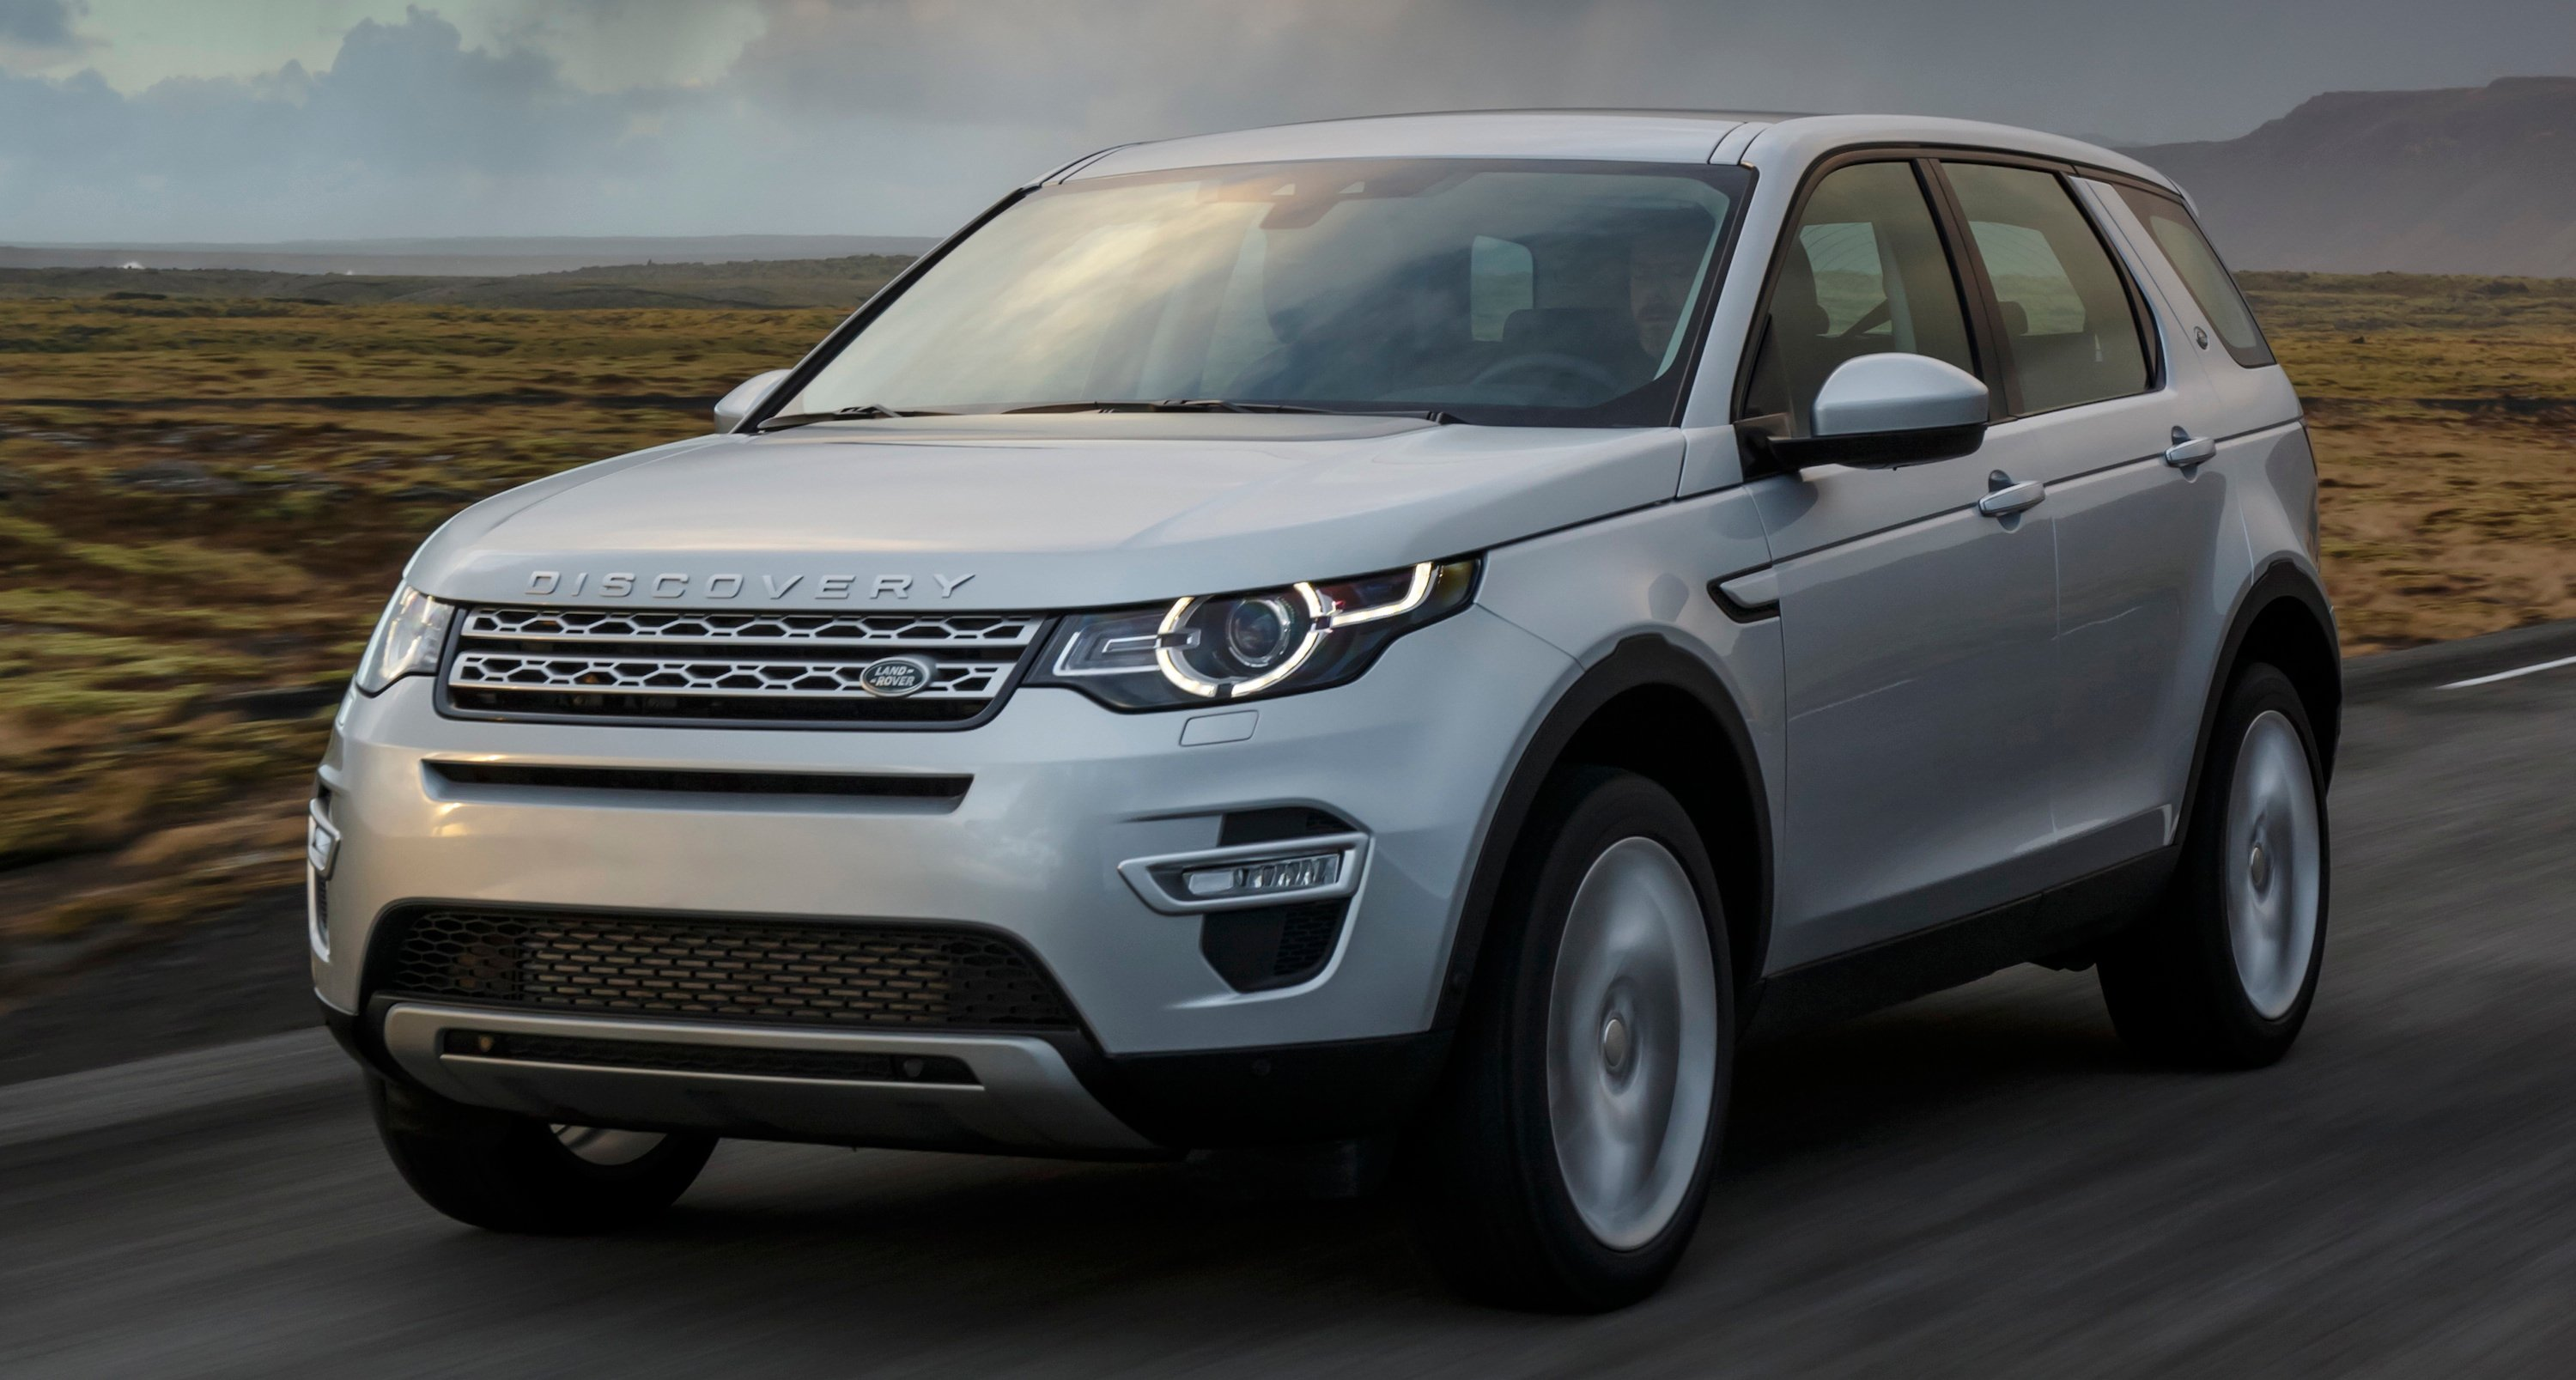 Land Rover Discovery Sport 2015-2019 design & styling